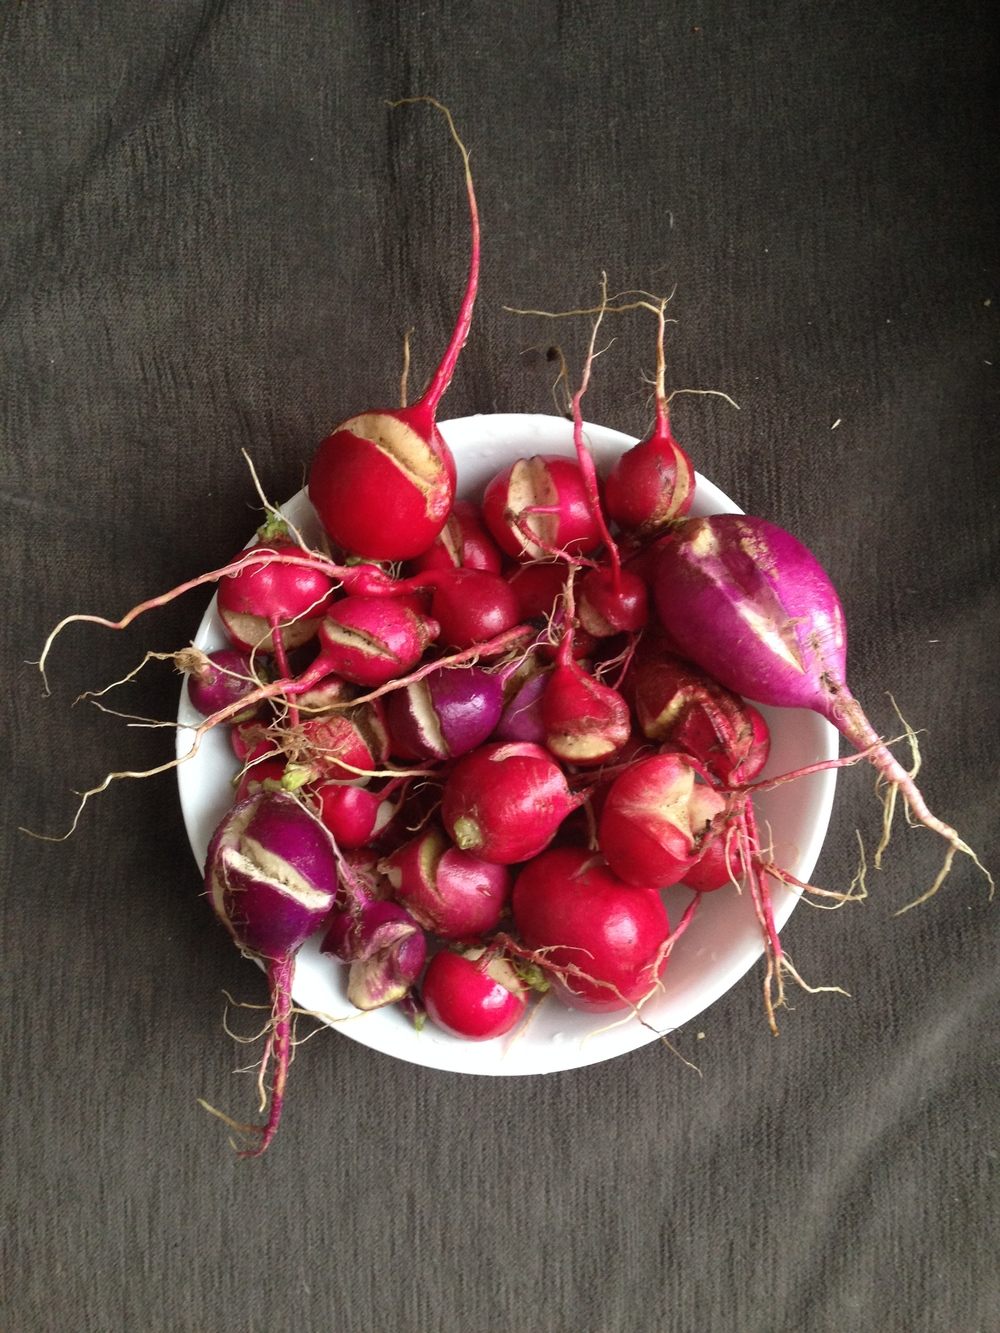 You can never have enough split radishes.....